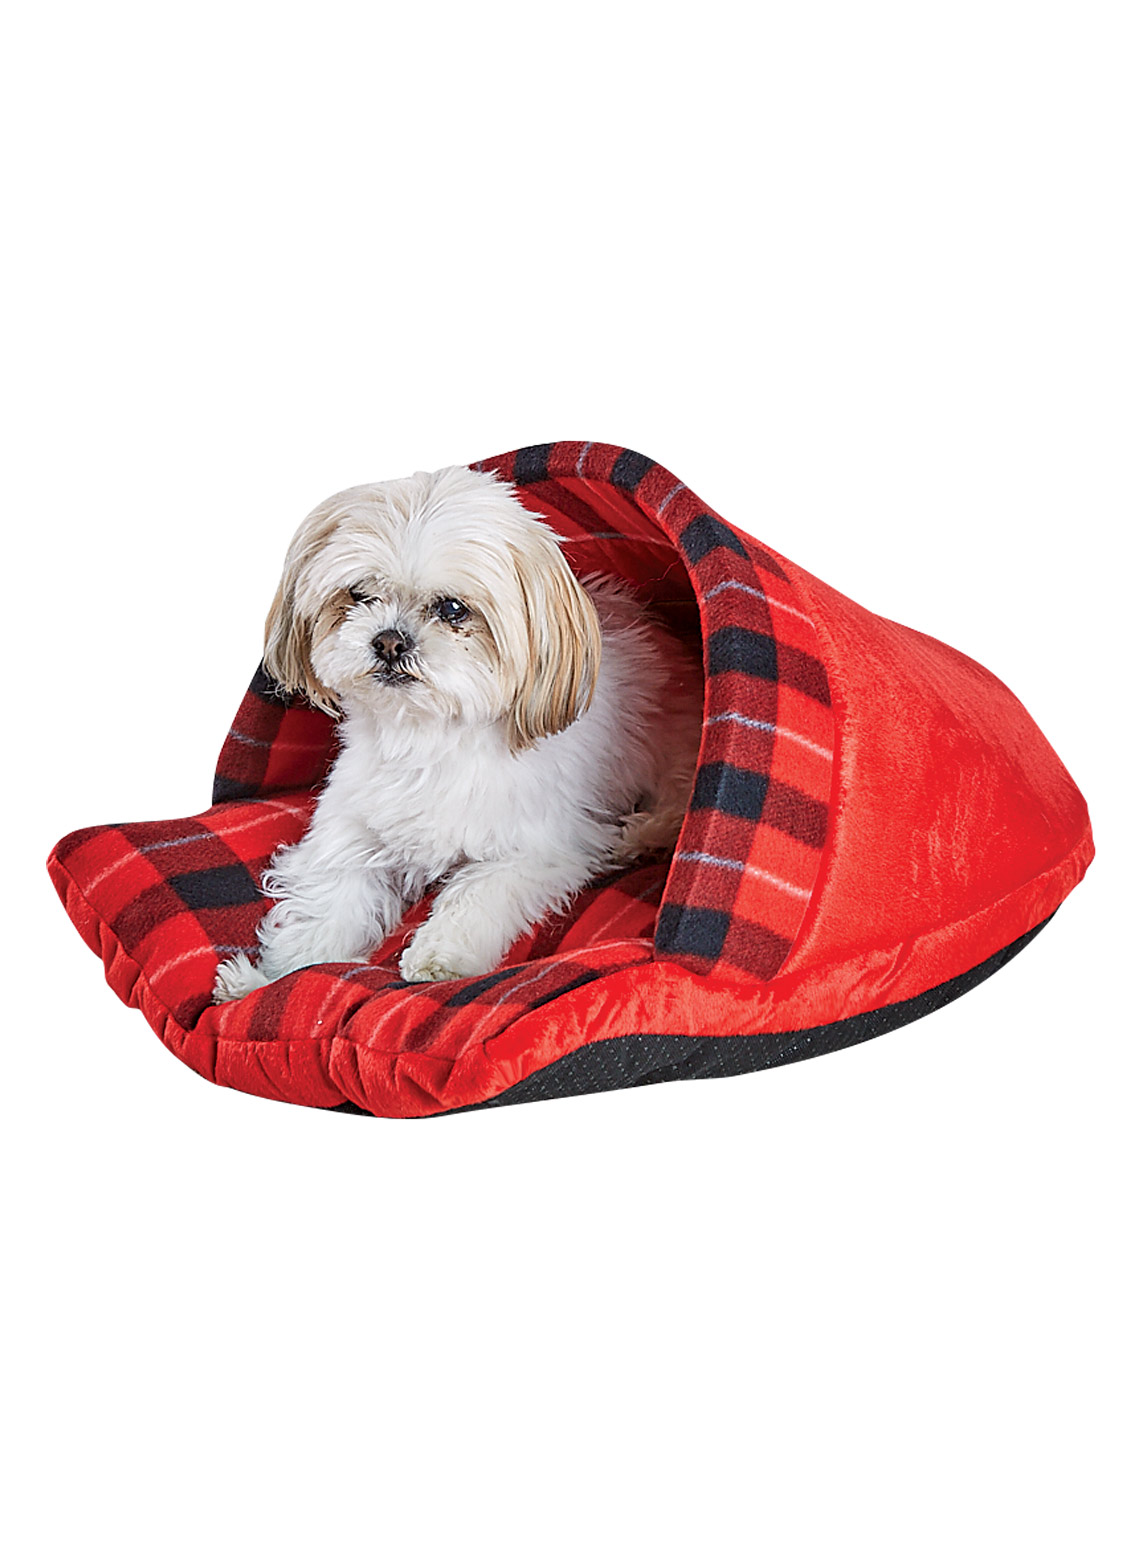 Slipper Shaped Pet Bed Carolwrightgifts Com